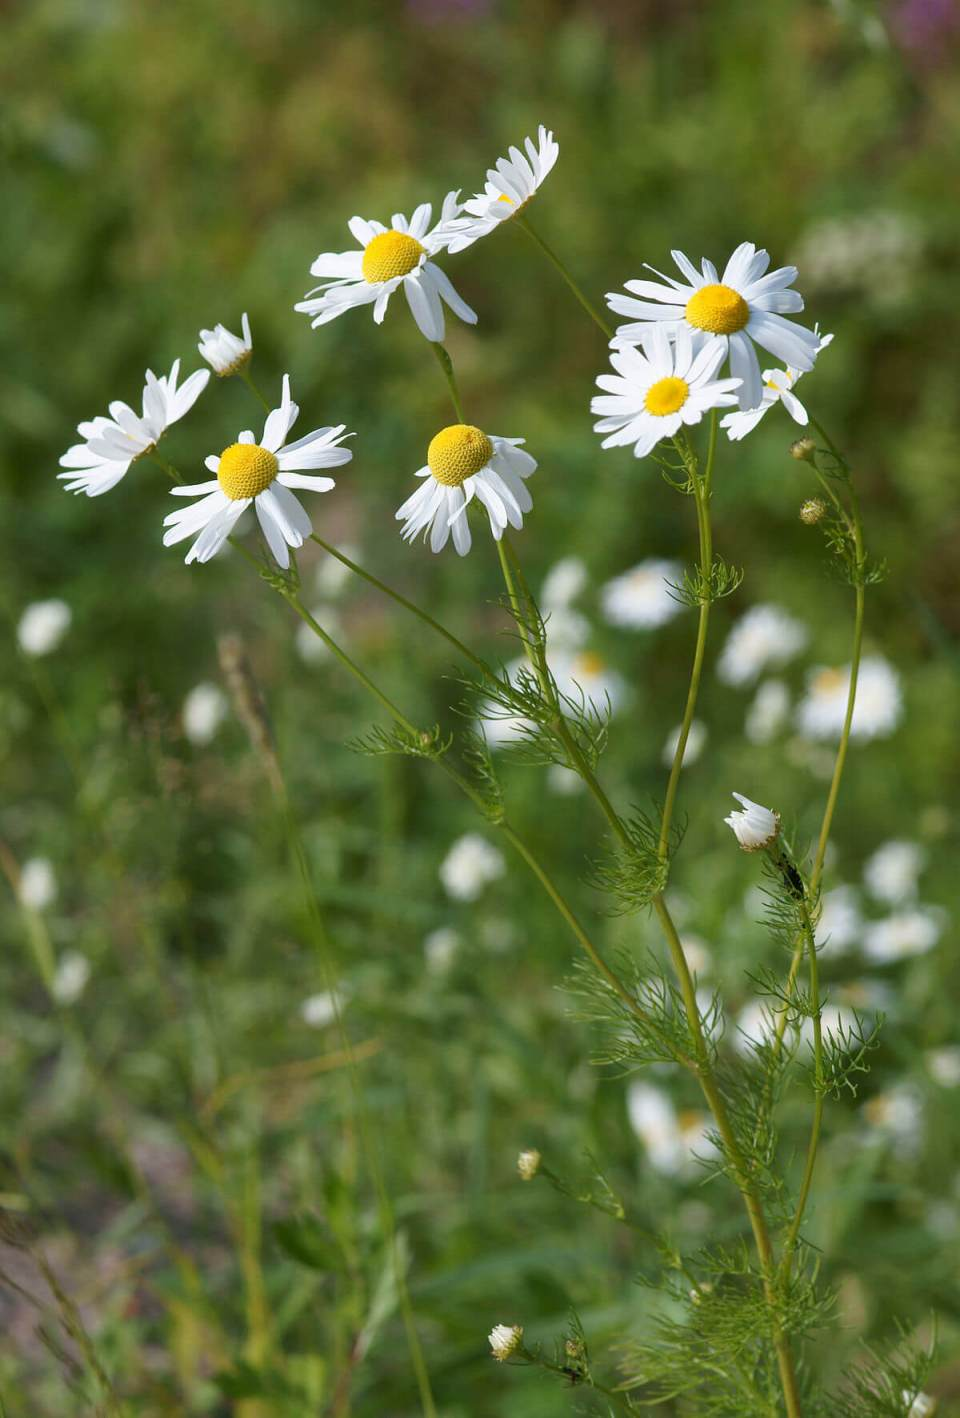 Growing Chamomile plants